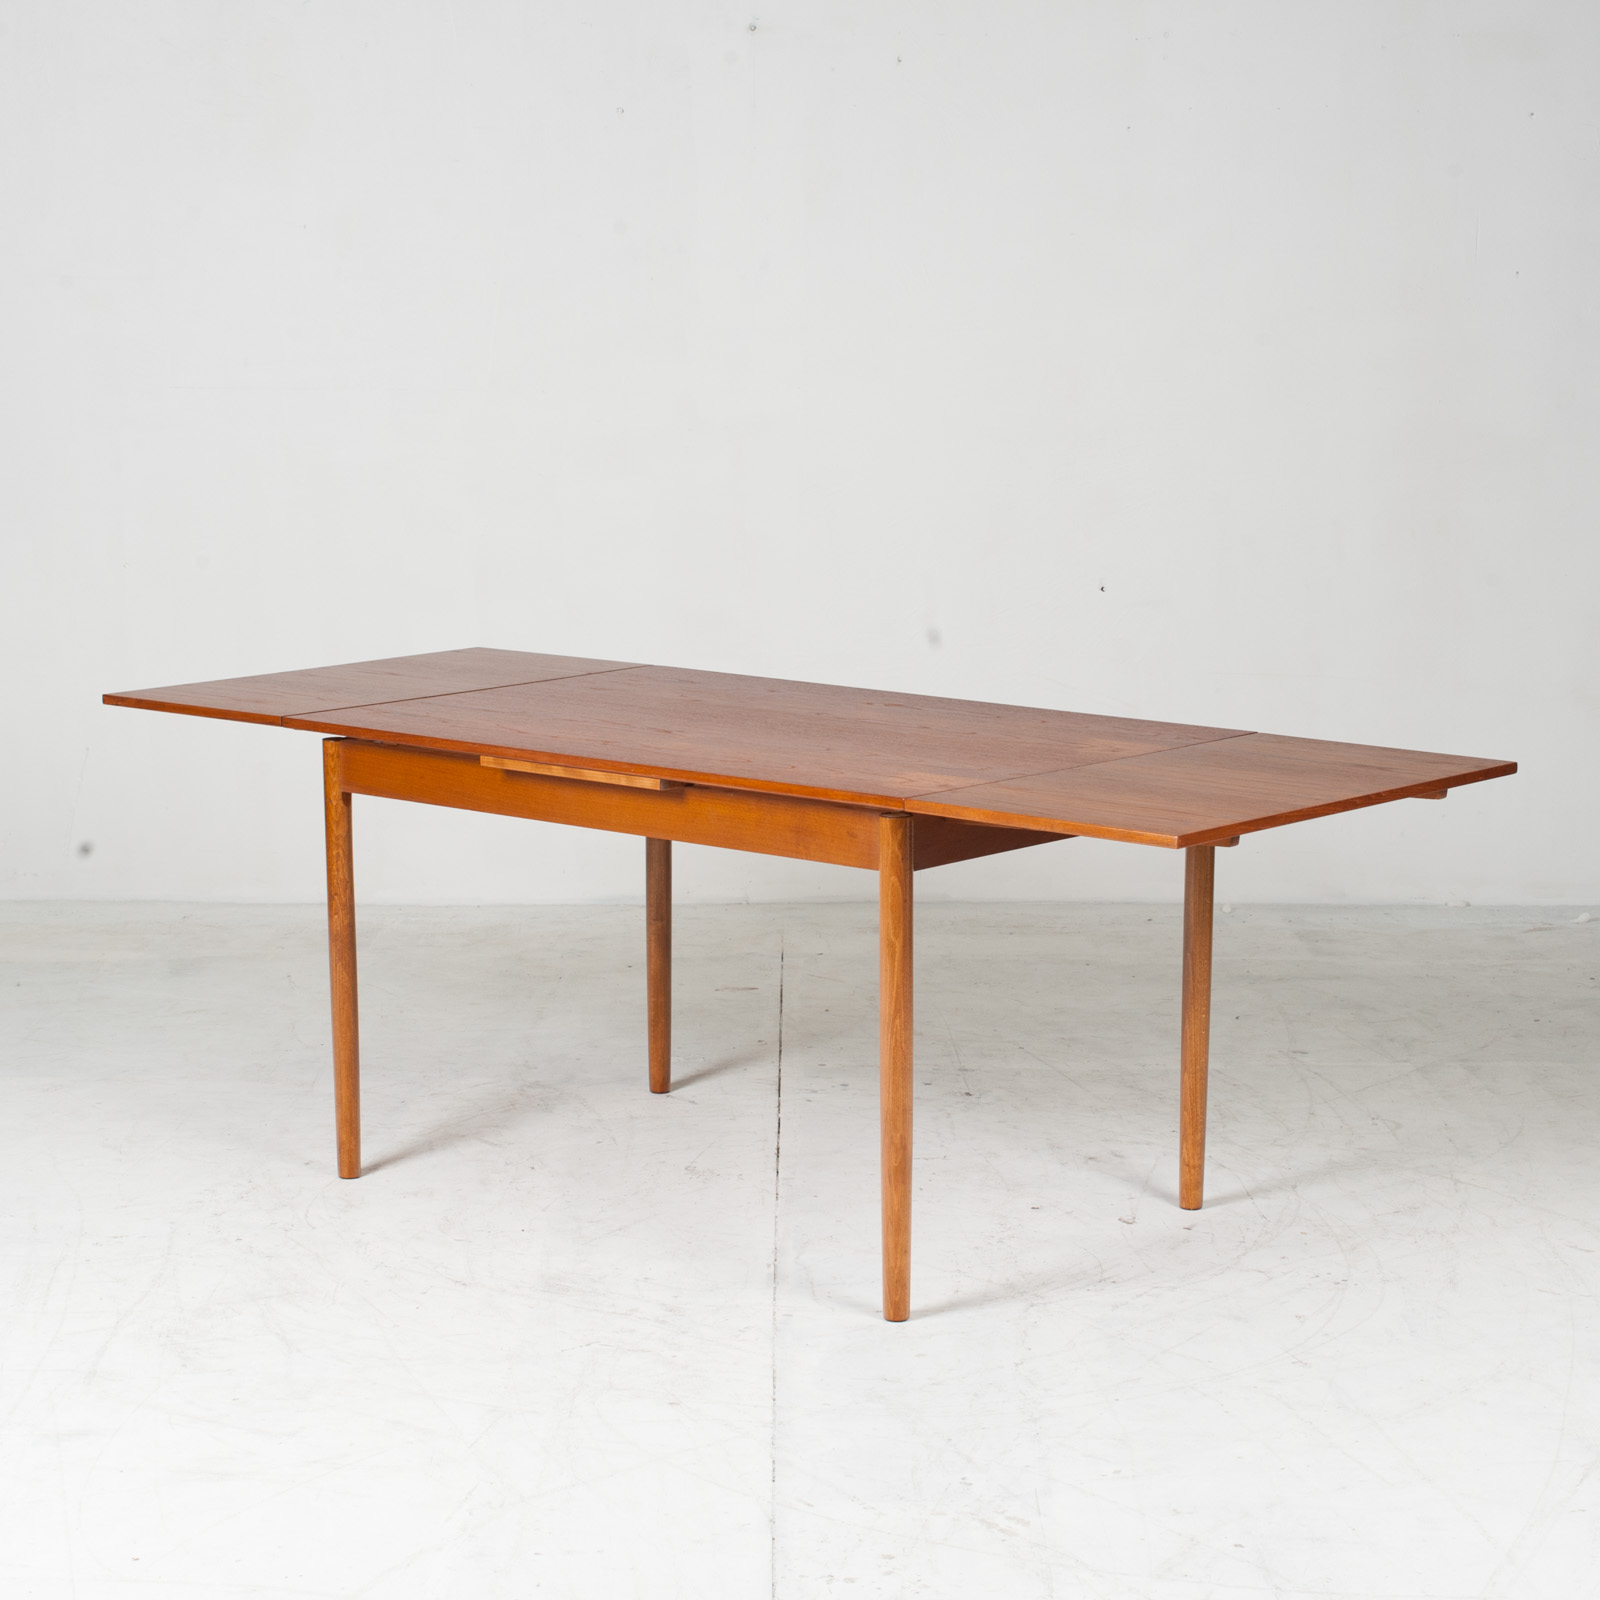 Rectangular Dining Table In Teak With Concealed Extentions 1960s Denmark8